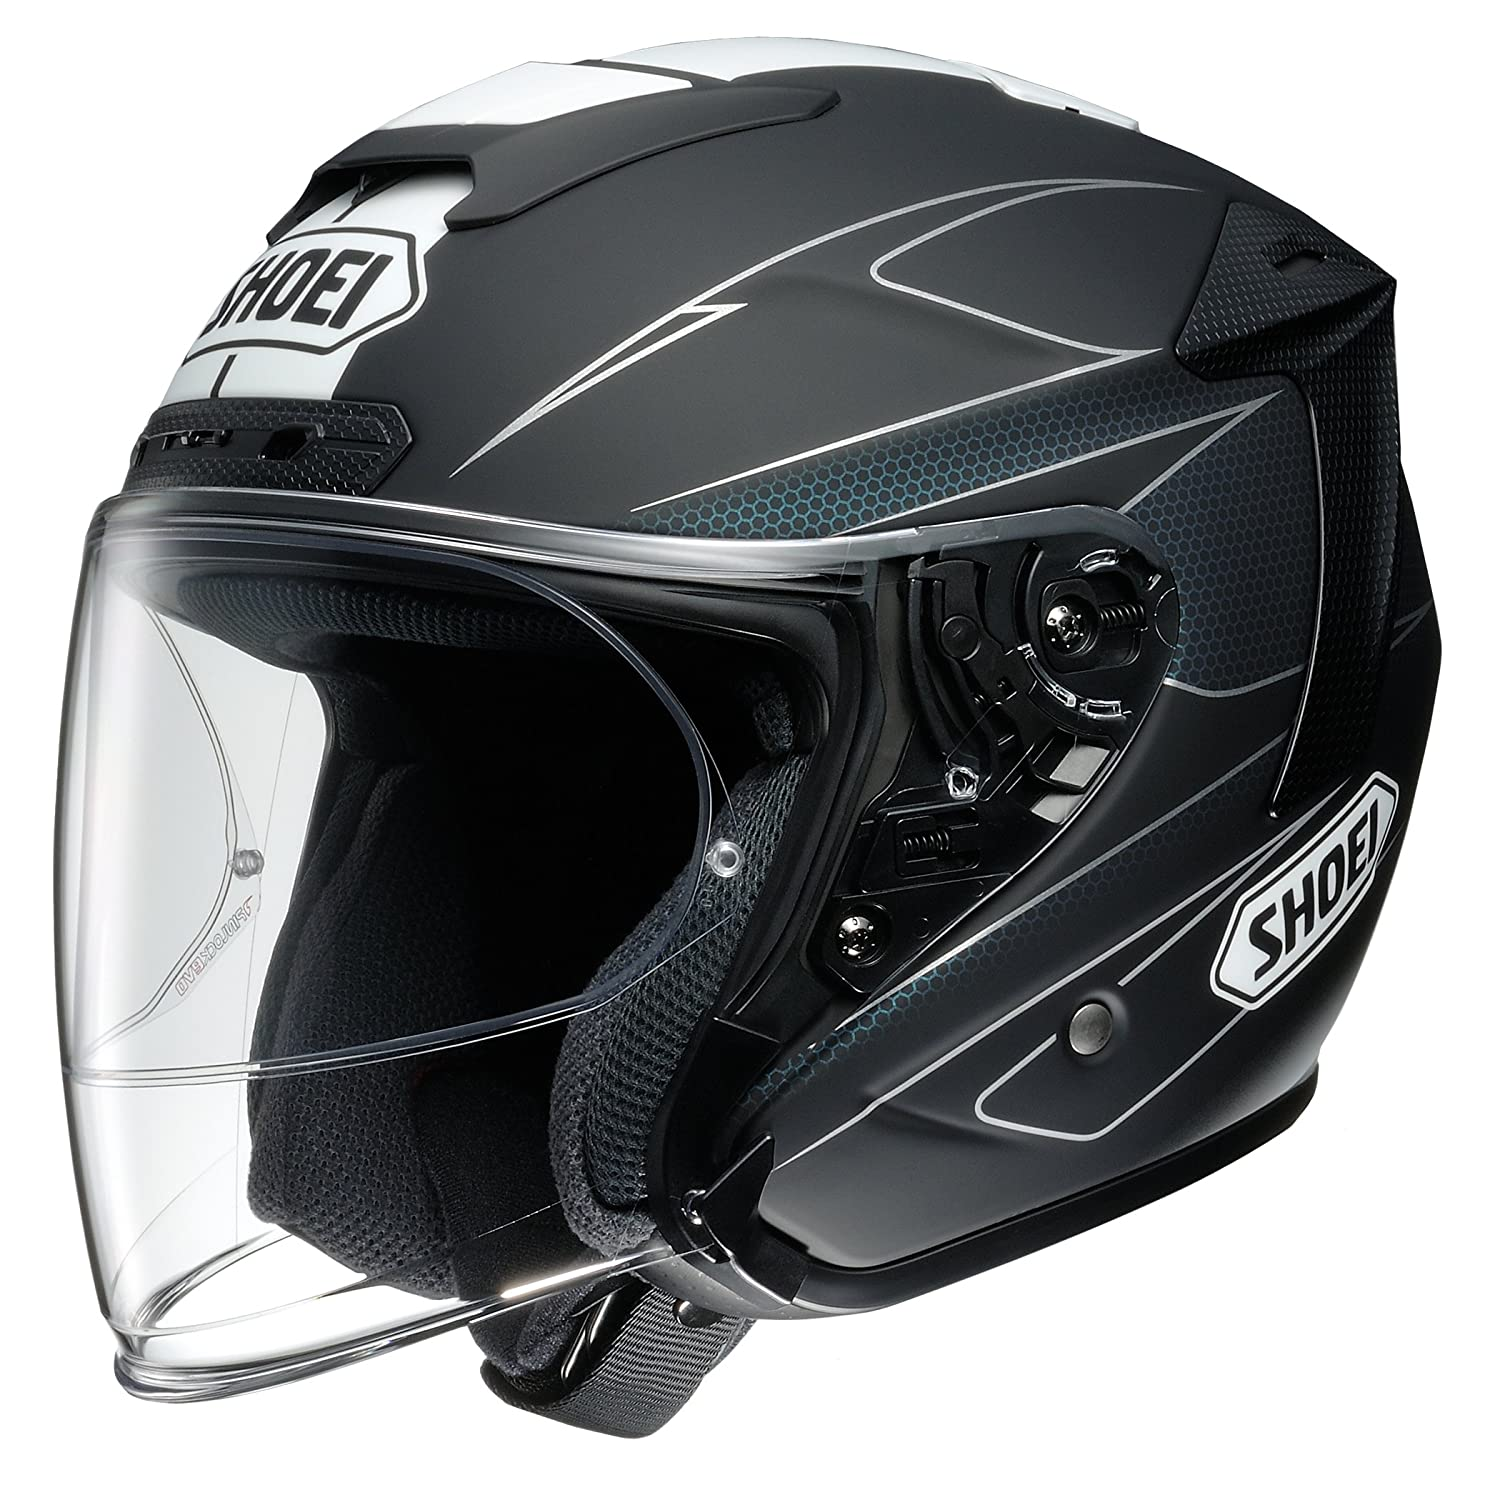 ショウエイ(SHOEI) J-FORCE4 MODERNO (モデルノ) TC-5 (BLACK/WHITE) XXL(63cm)